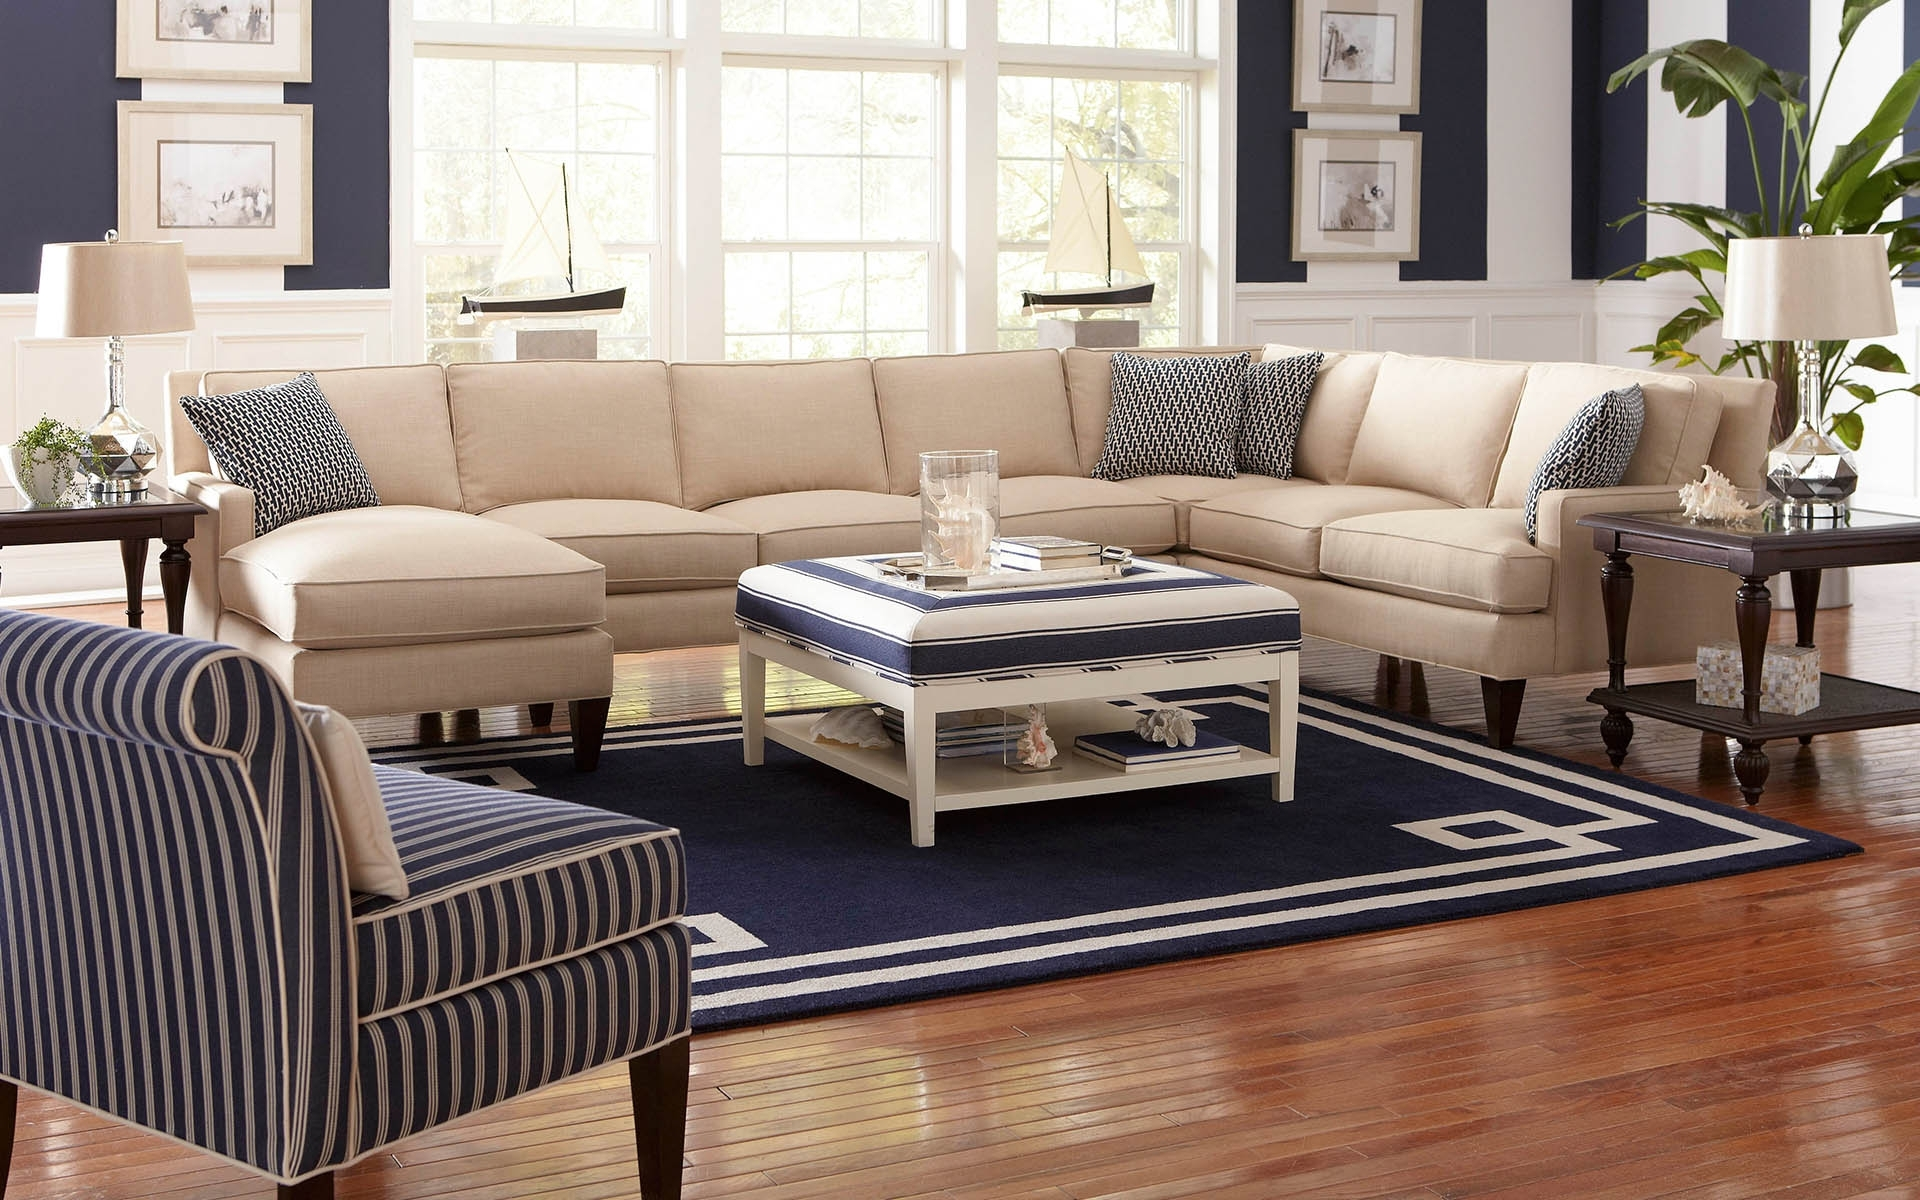 Appealing Sectional Sofas Havertys 14 For Your Mini Sectional Sofas with regard to Sectional Sofas at Havertys (Image 1 of 15)